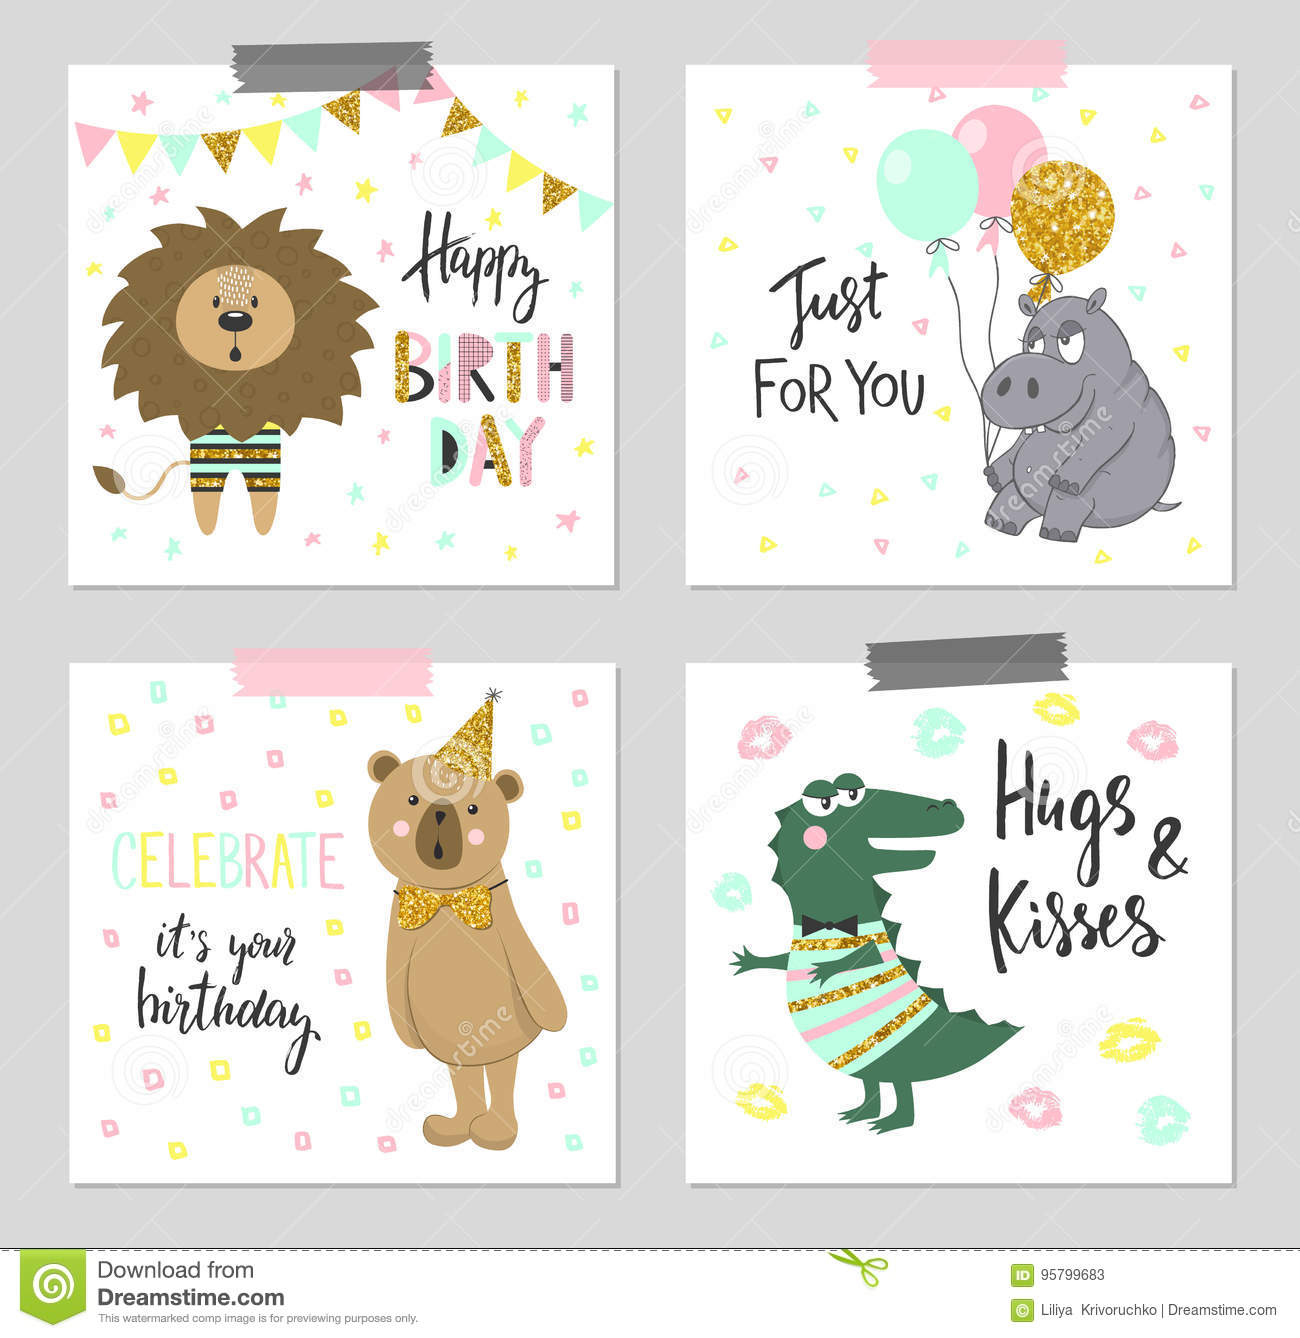 Happy birthday greeting cards and party invitation templates with cute animals.